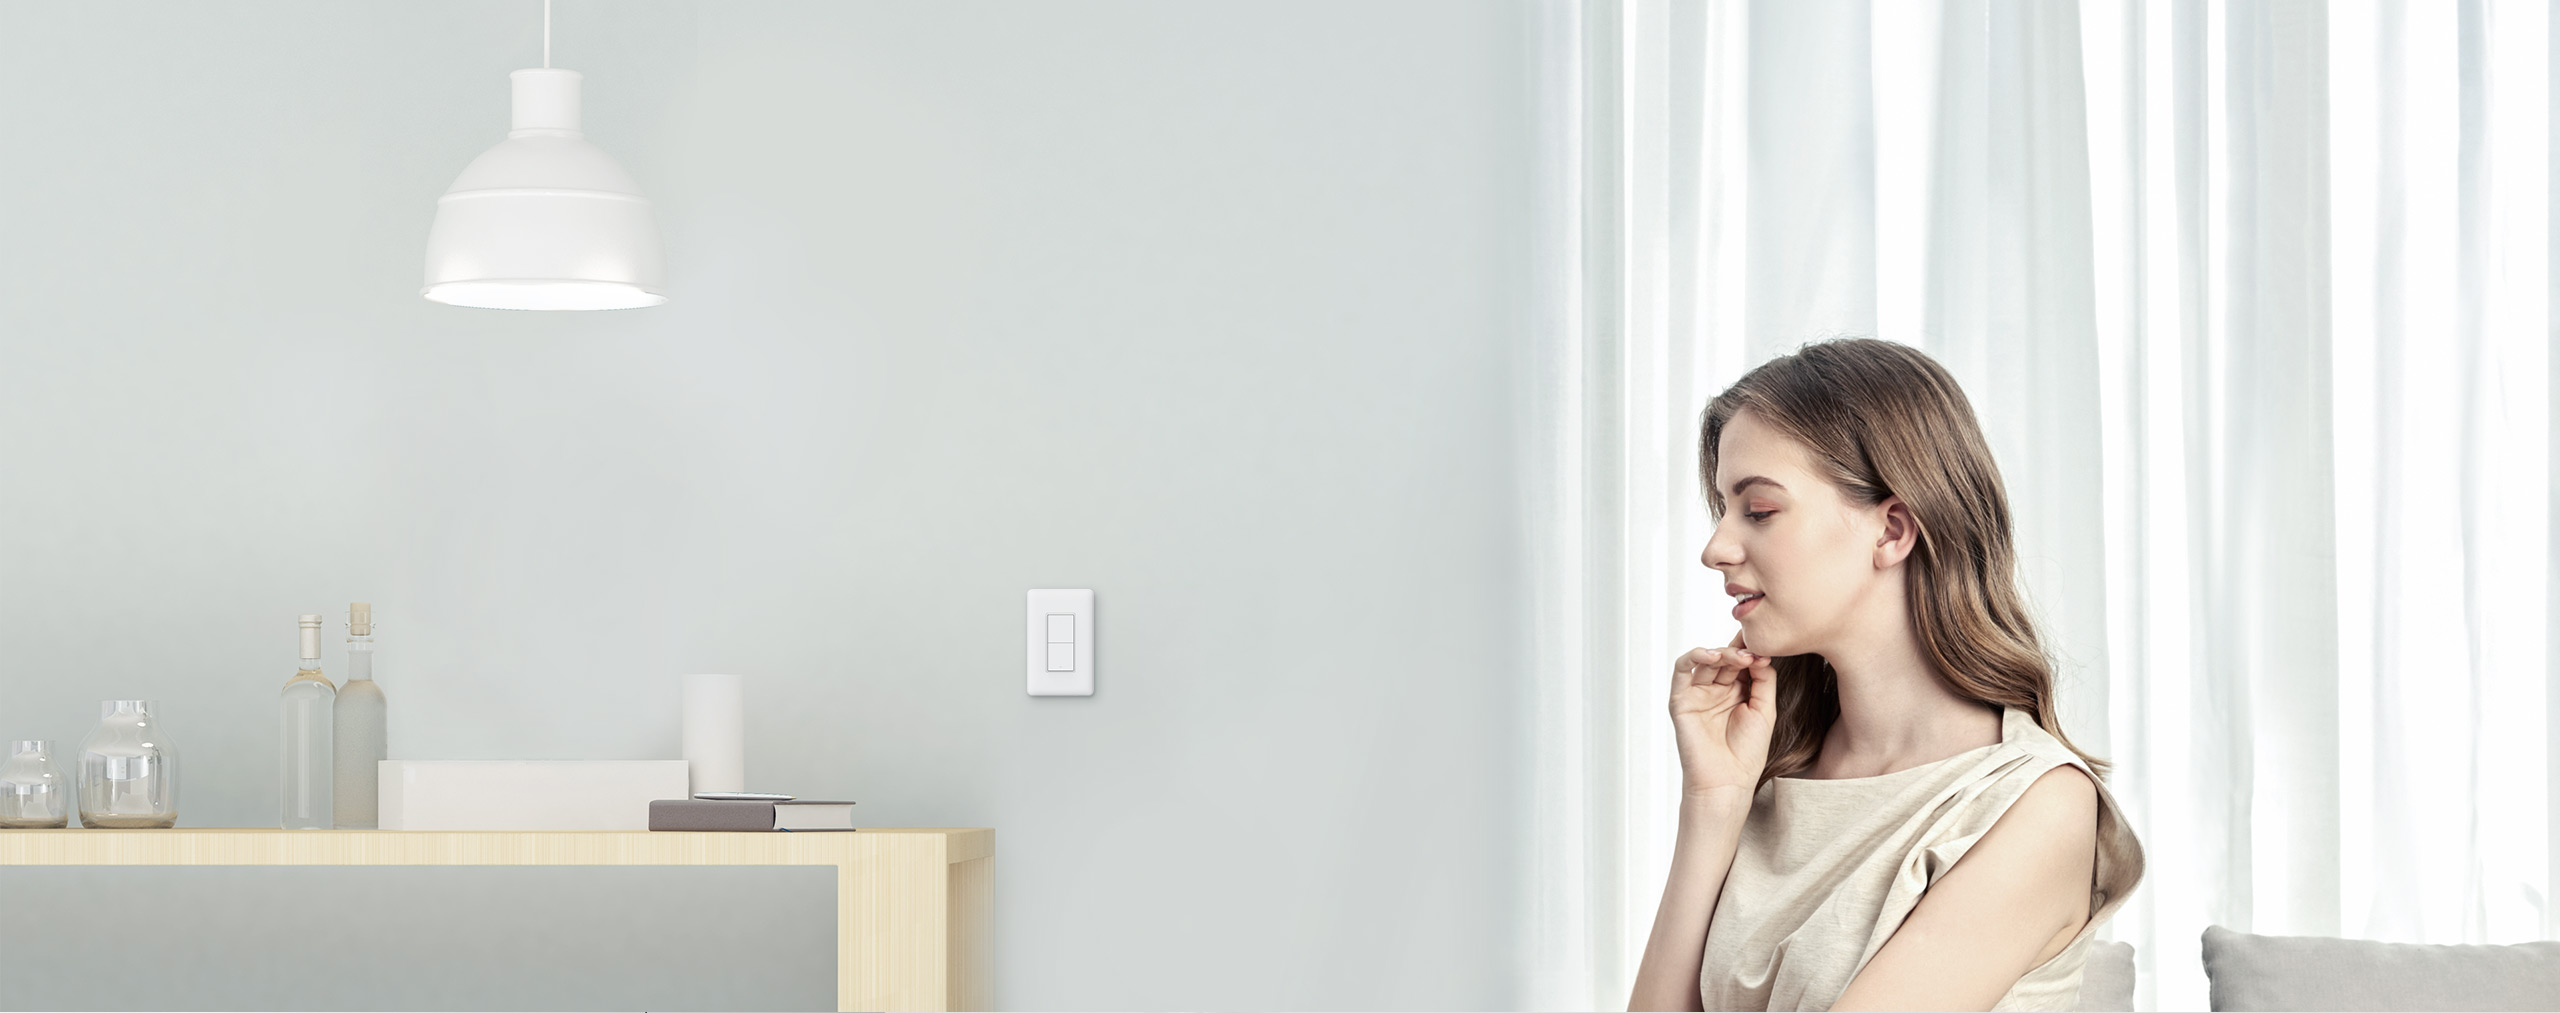 Smart wall switch with neutral compatible with HomeKit Siri, Google Assistant and Amazon Alexa